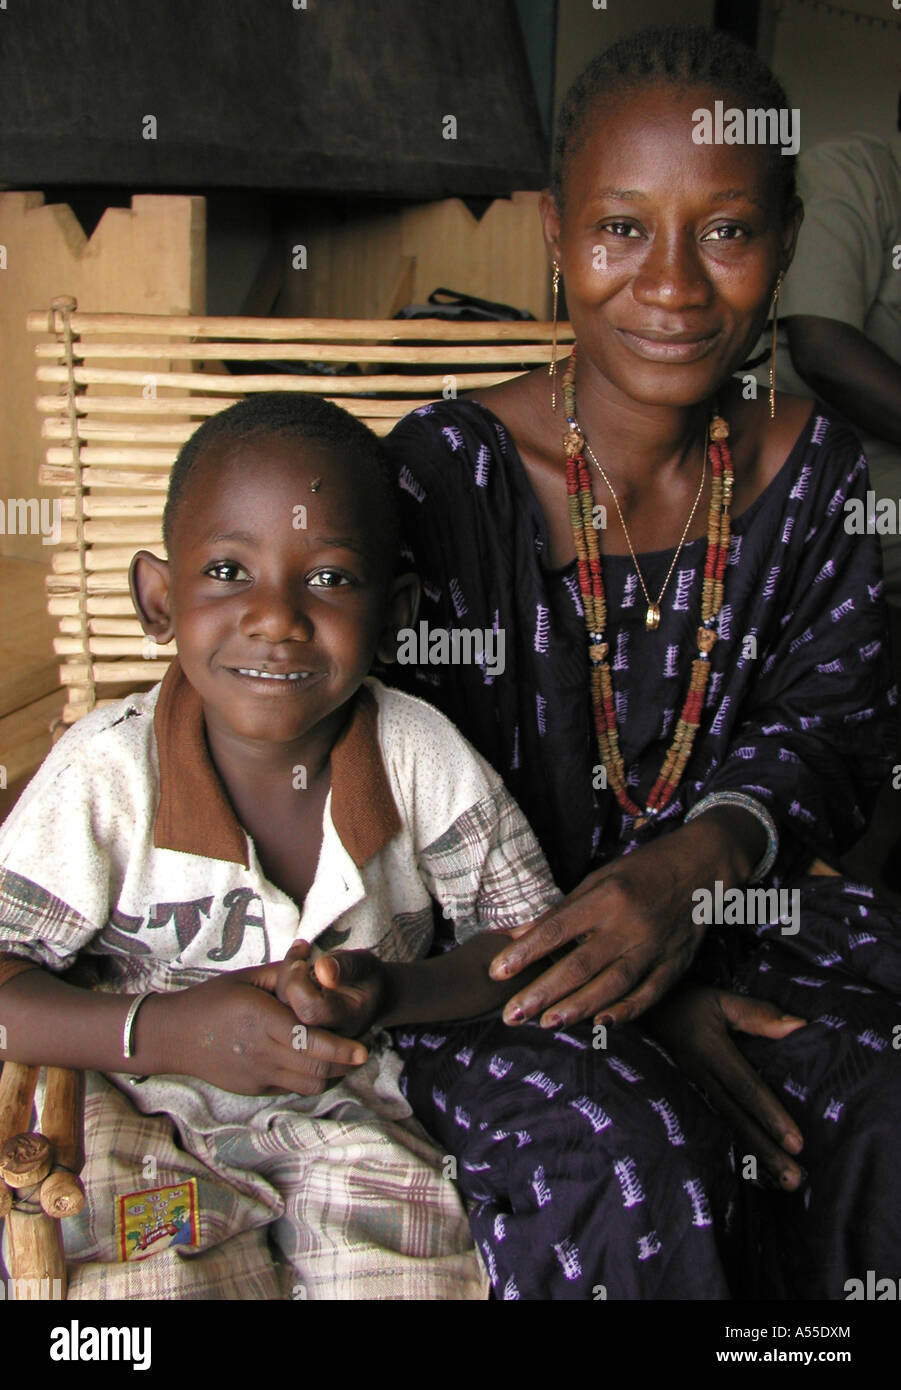 Painet ik0343 burkina faso 35oldold pauline hiv son fatahou vie positif aids support group ouagadougou country developing - Stock Image